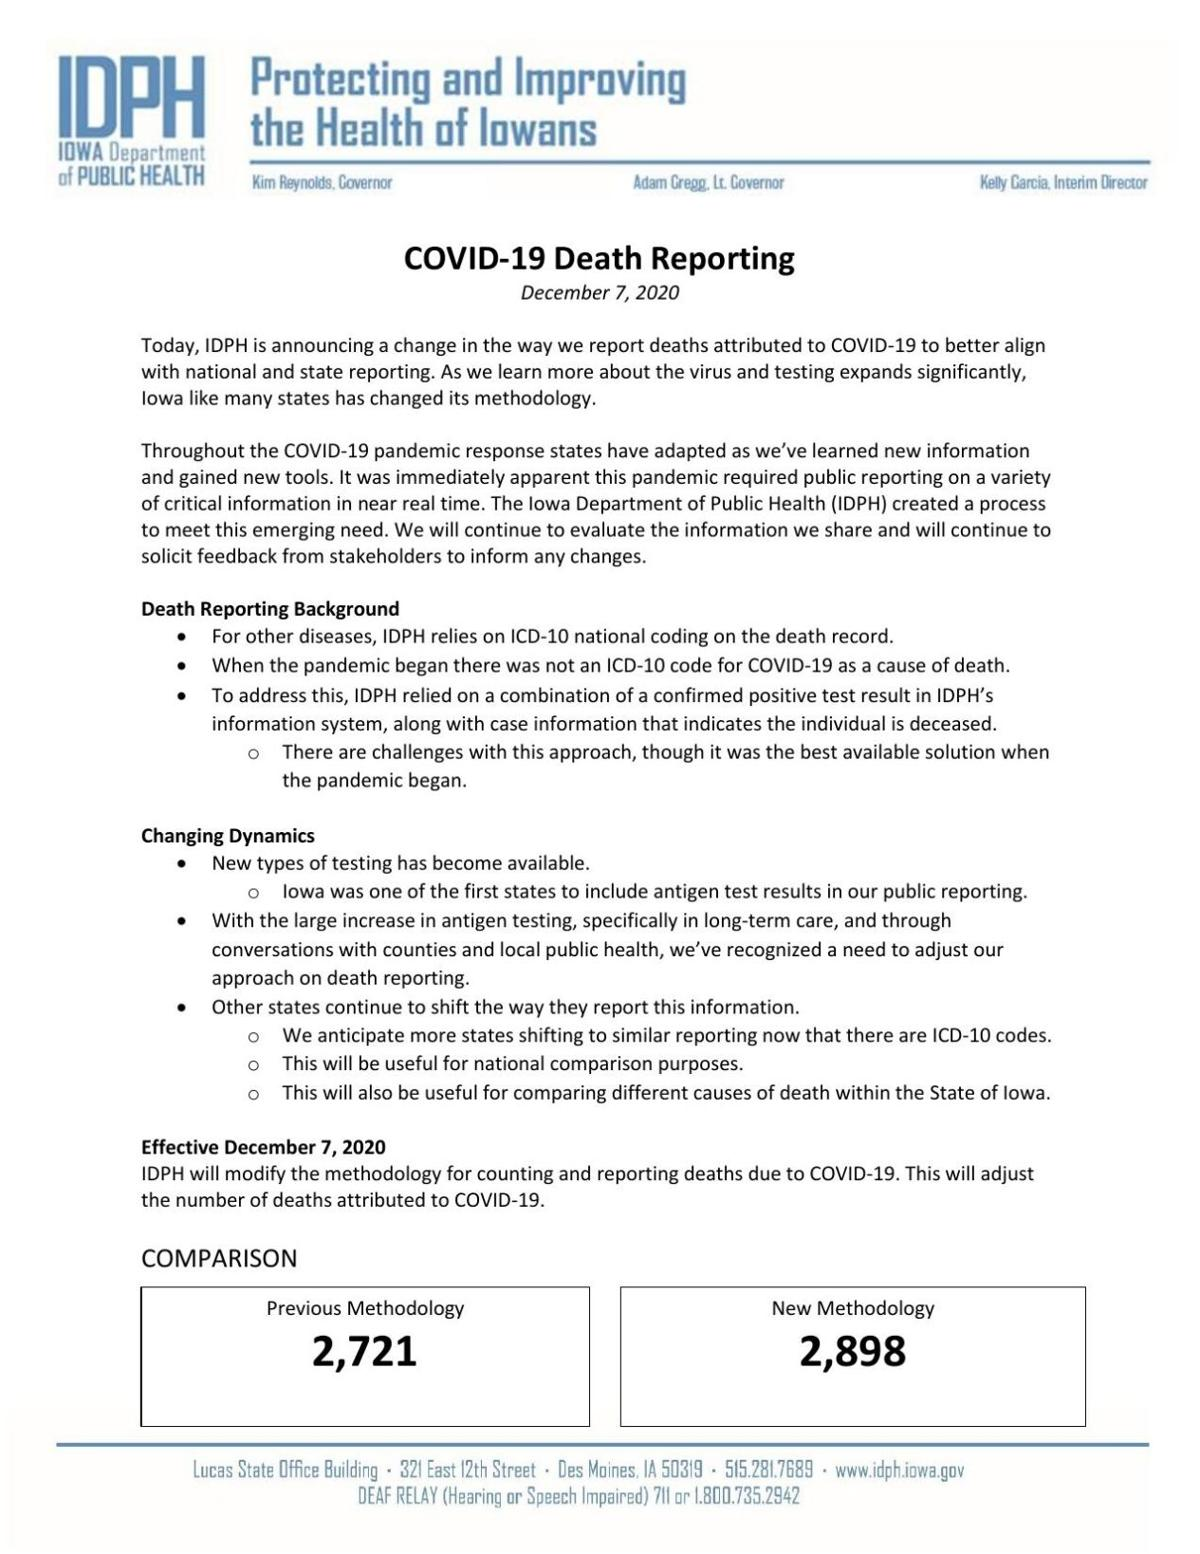 IDPH Press Release on Death Methodology Changes 12-7-2020